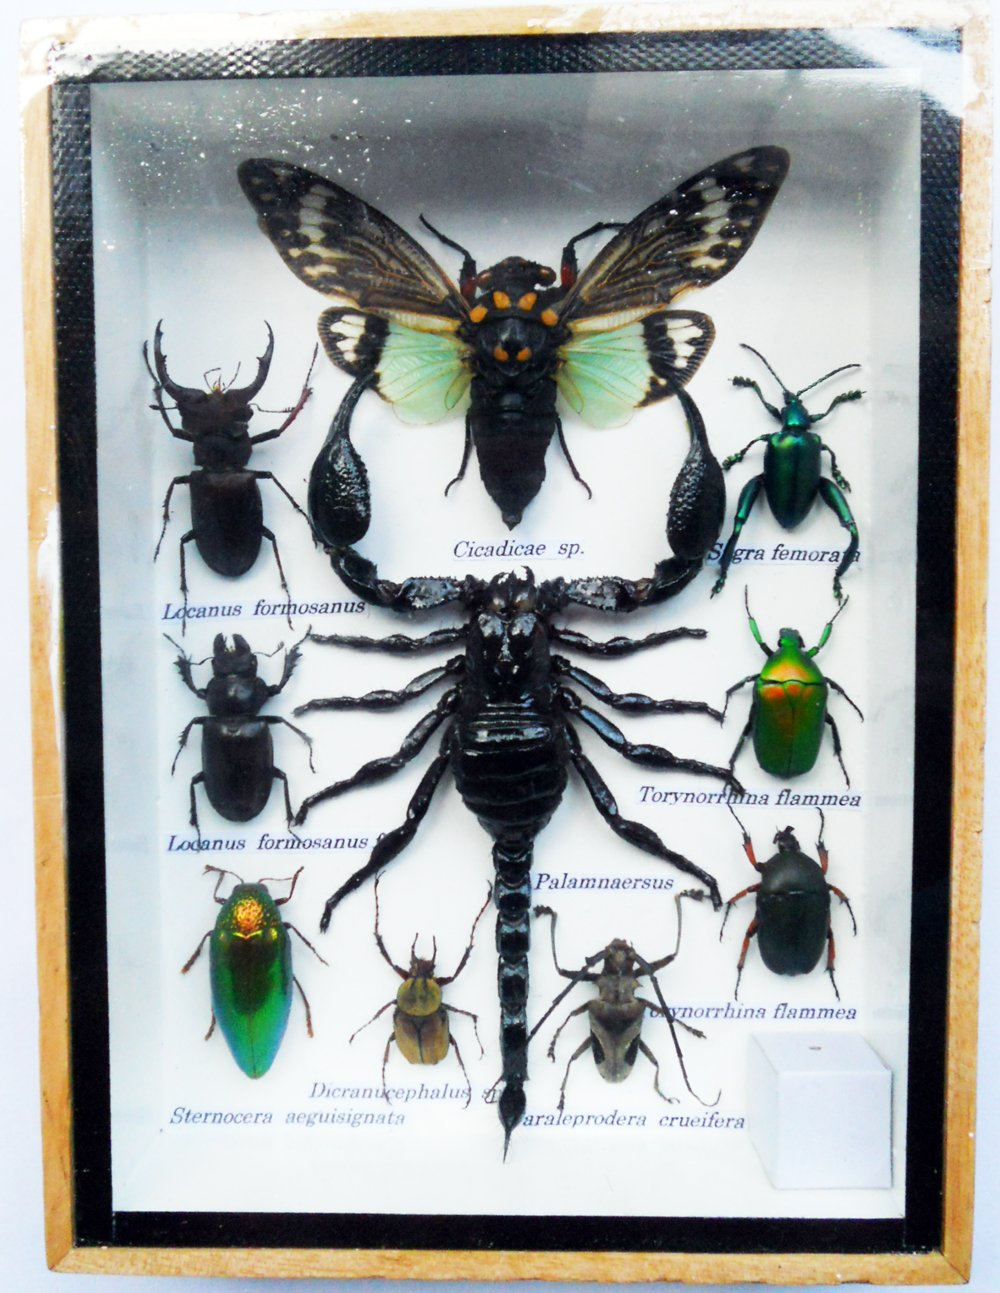 B00AN76RVG REAL MIXS VERY RARE INSECT TAXIDERMY SET IN BOXES DISPLAY FOR COLLECTIBLES 71nzAQrSEmL